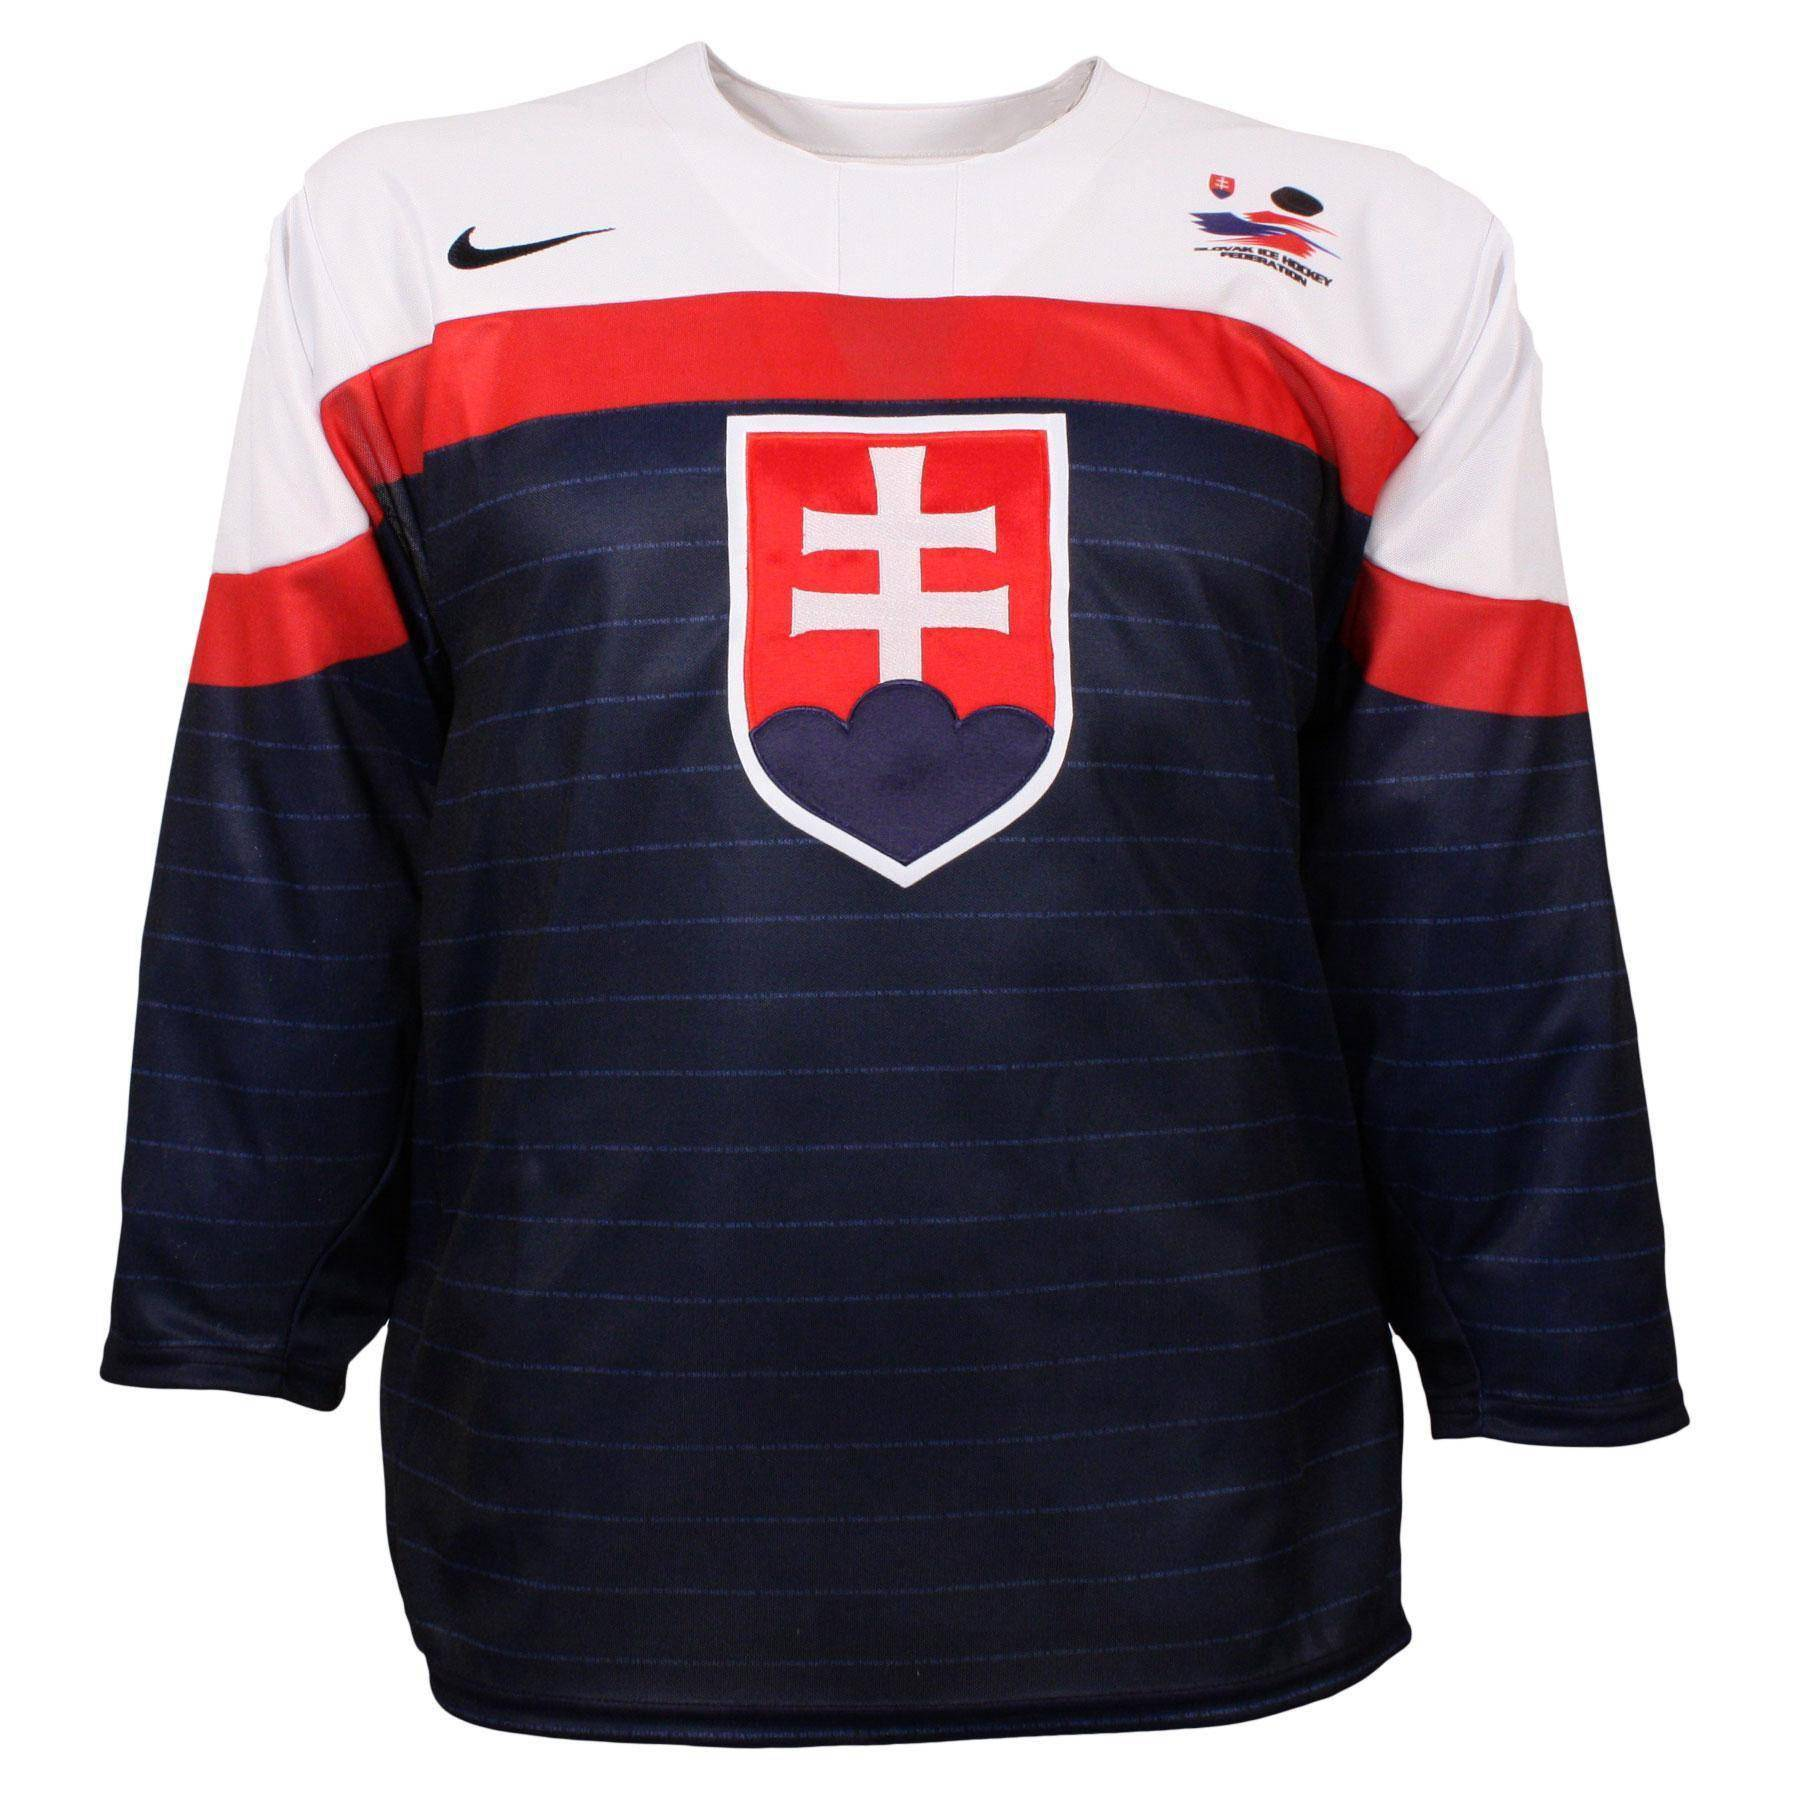 Team-Slovakia-IIHF-Official-Twill-Replica-Hockey-Jersey-N33429_XL